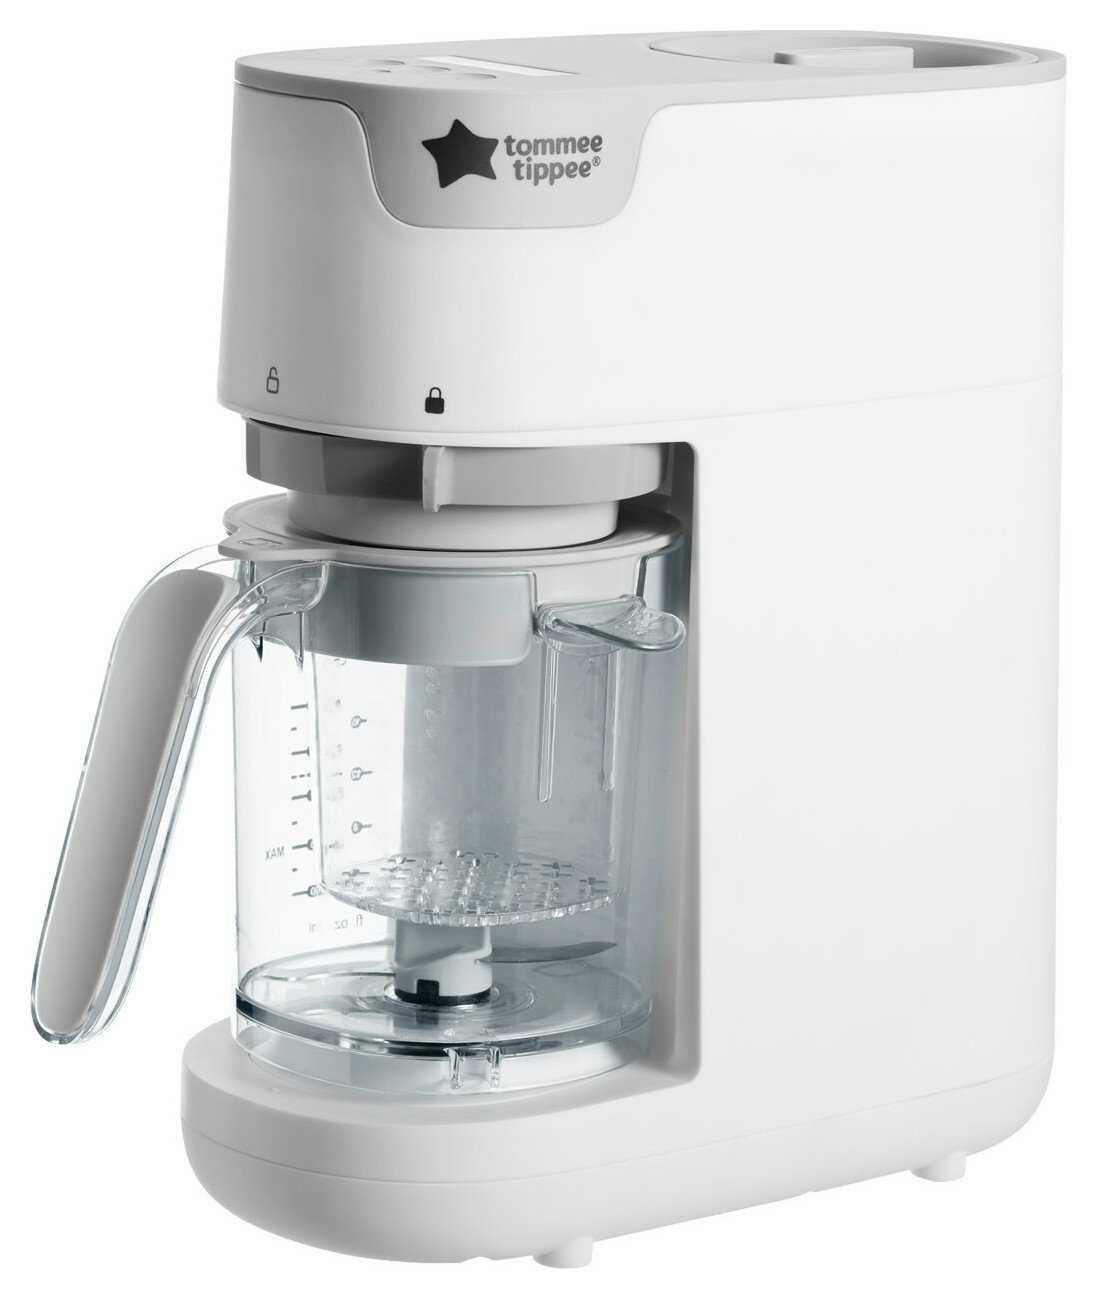 Tommee Tippee Quick-Cook Baby Food Blender